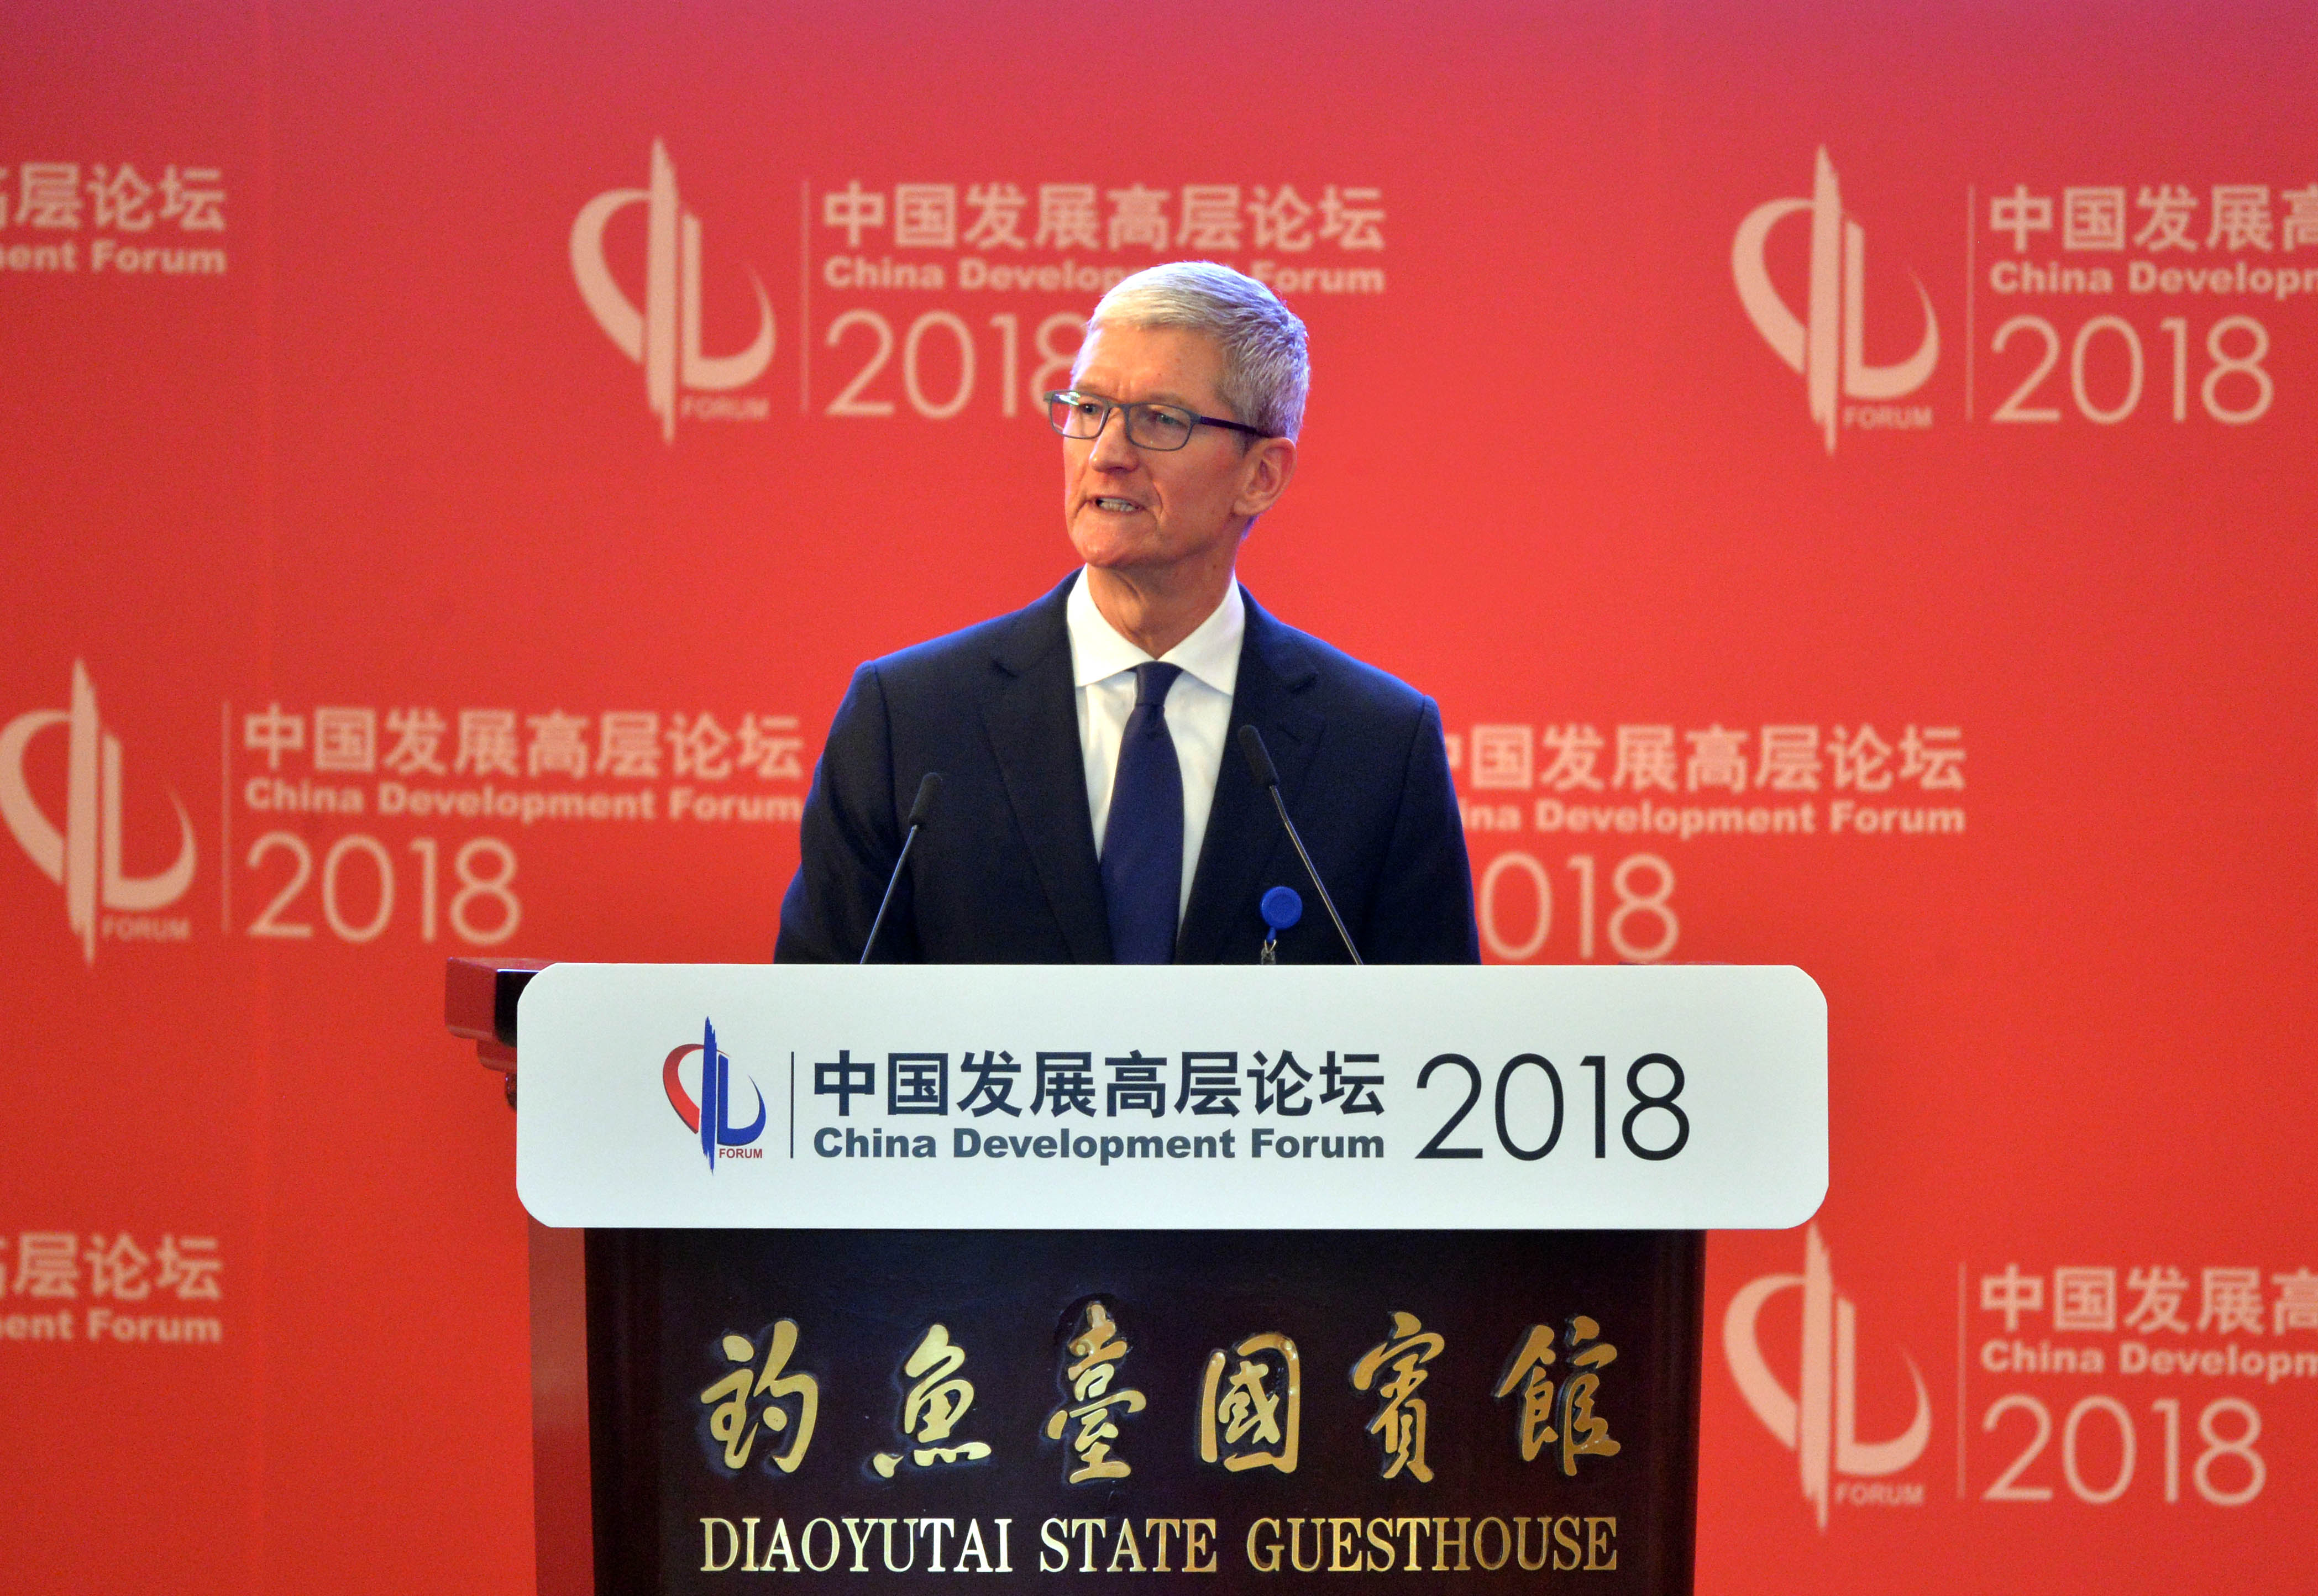 Apple cracked China when Facebook and Google couldn't. Now that's a problem for Apple.